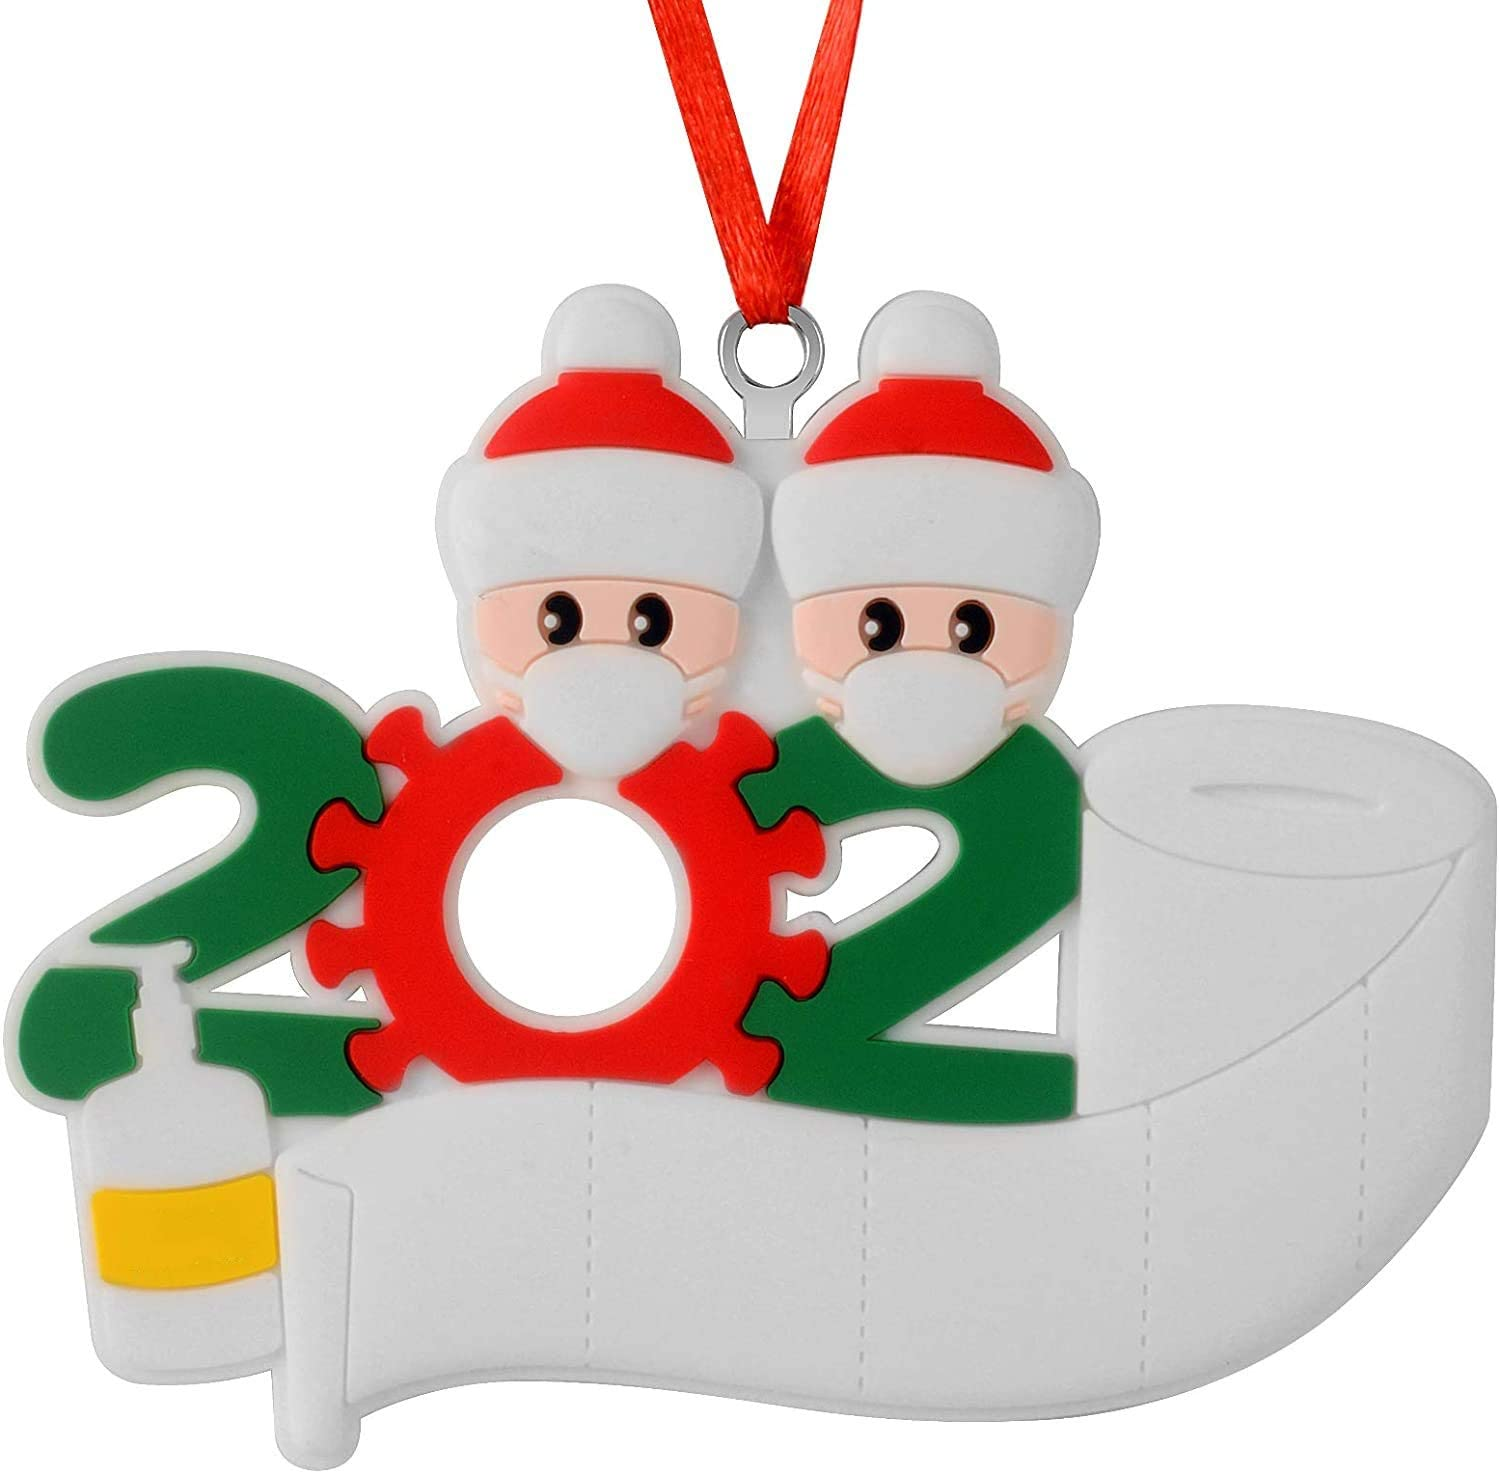 COSY 2020 Personalized Christmas Ornaments With Masks